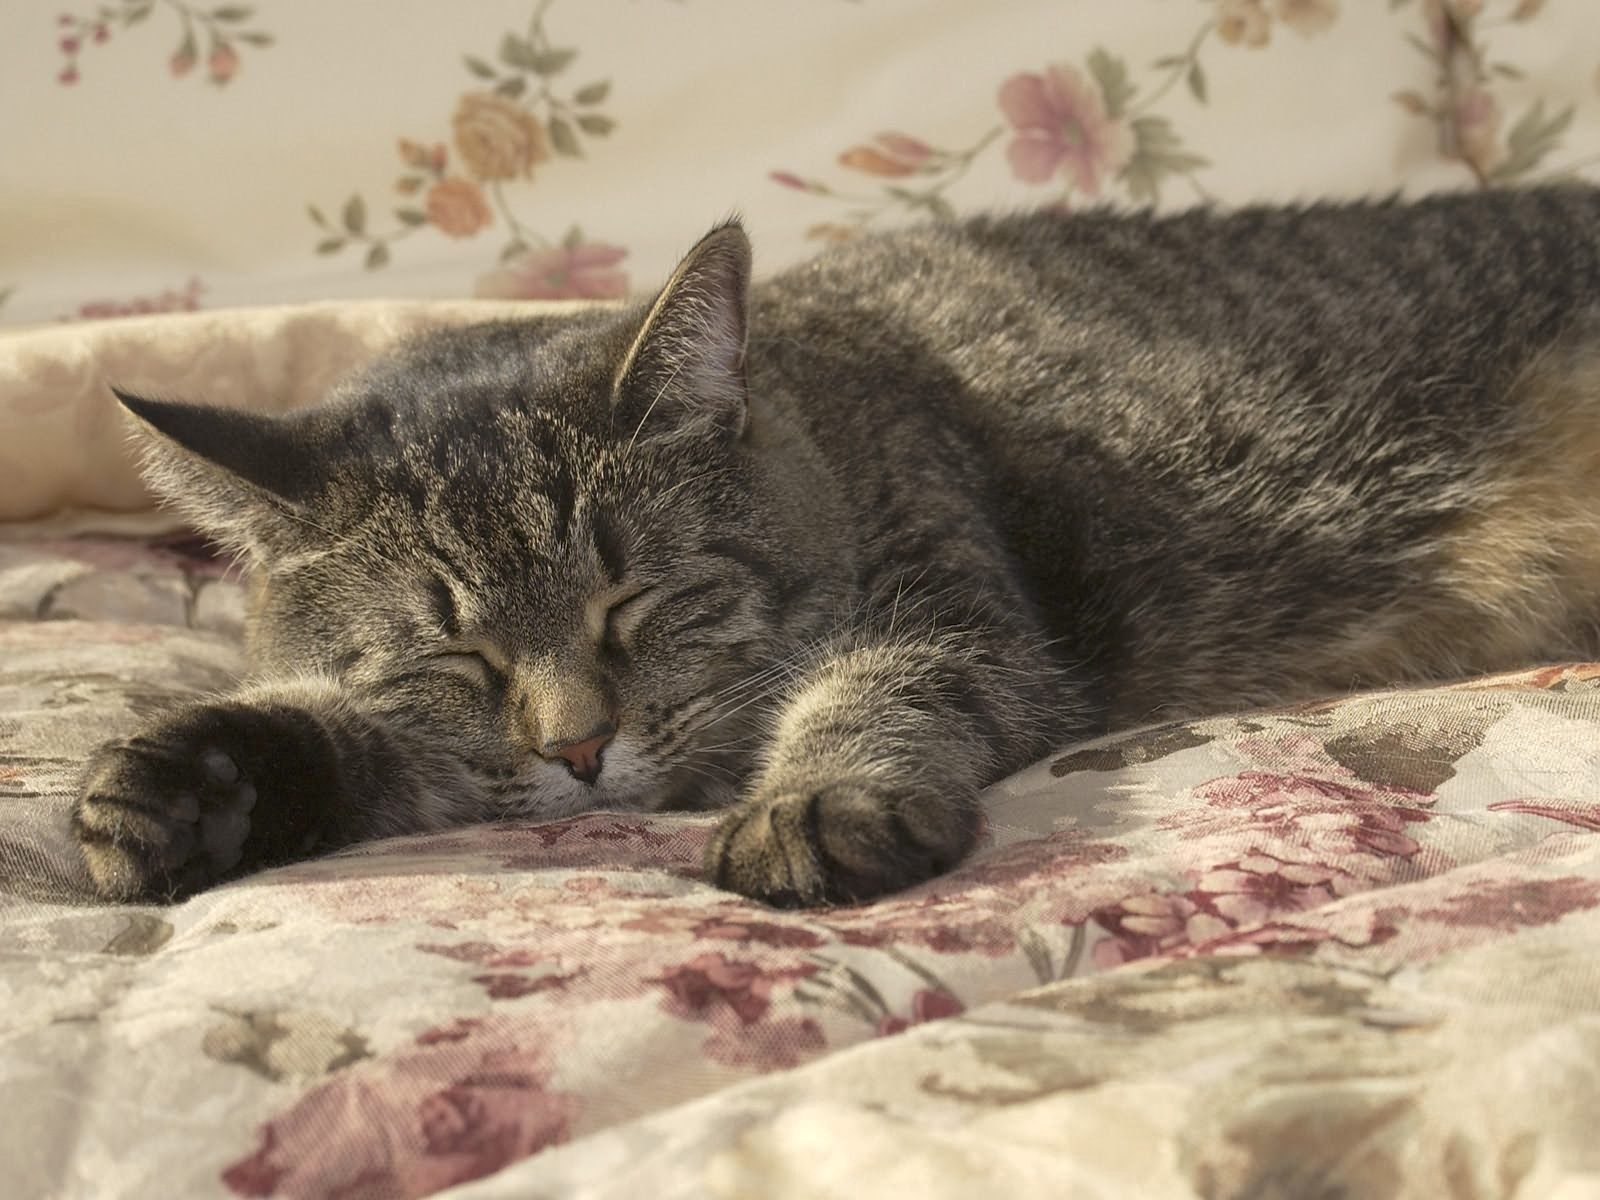 113761 download wallpaper Animals, Cat, Sleep, Dream, Paw, Bed screensavers and pictures for free